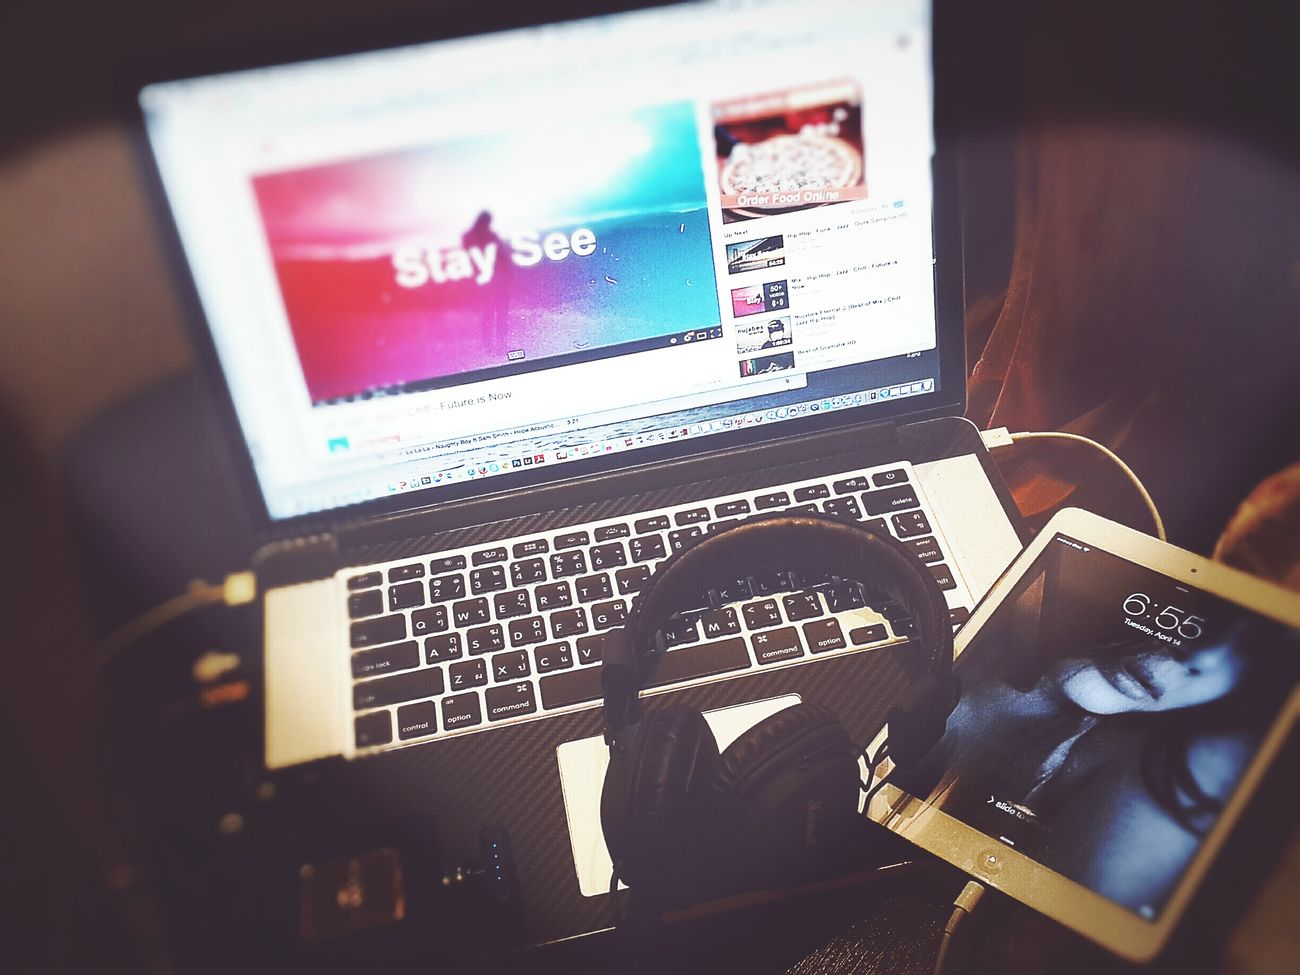 What I really need... Taking Photos Enjoy Music Stuffs My Stuffs Important To Me Check This Out Listening To Music